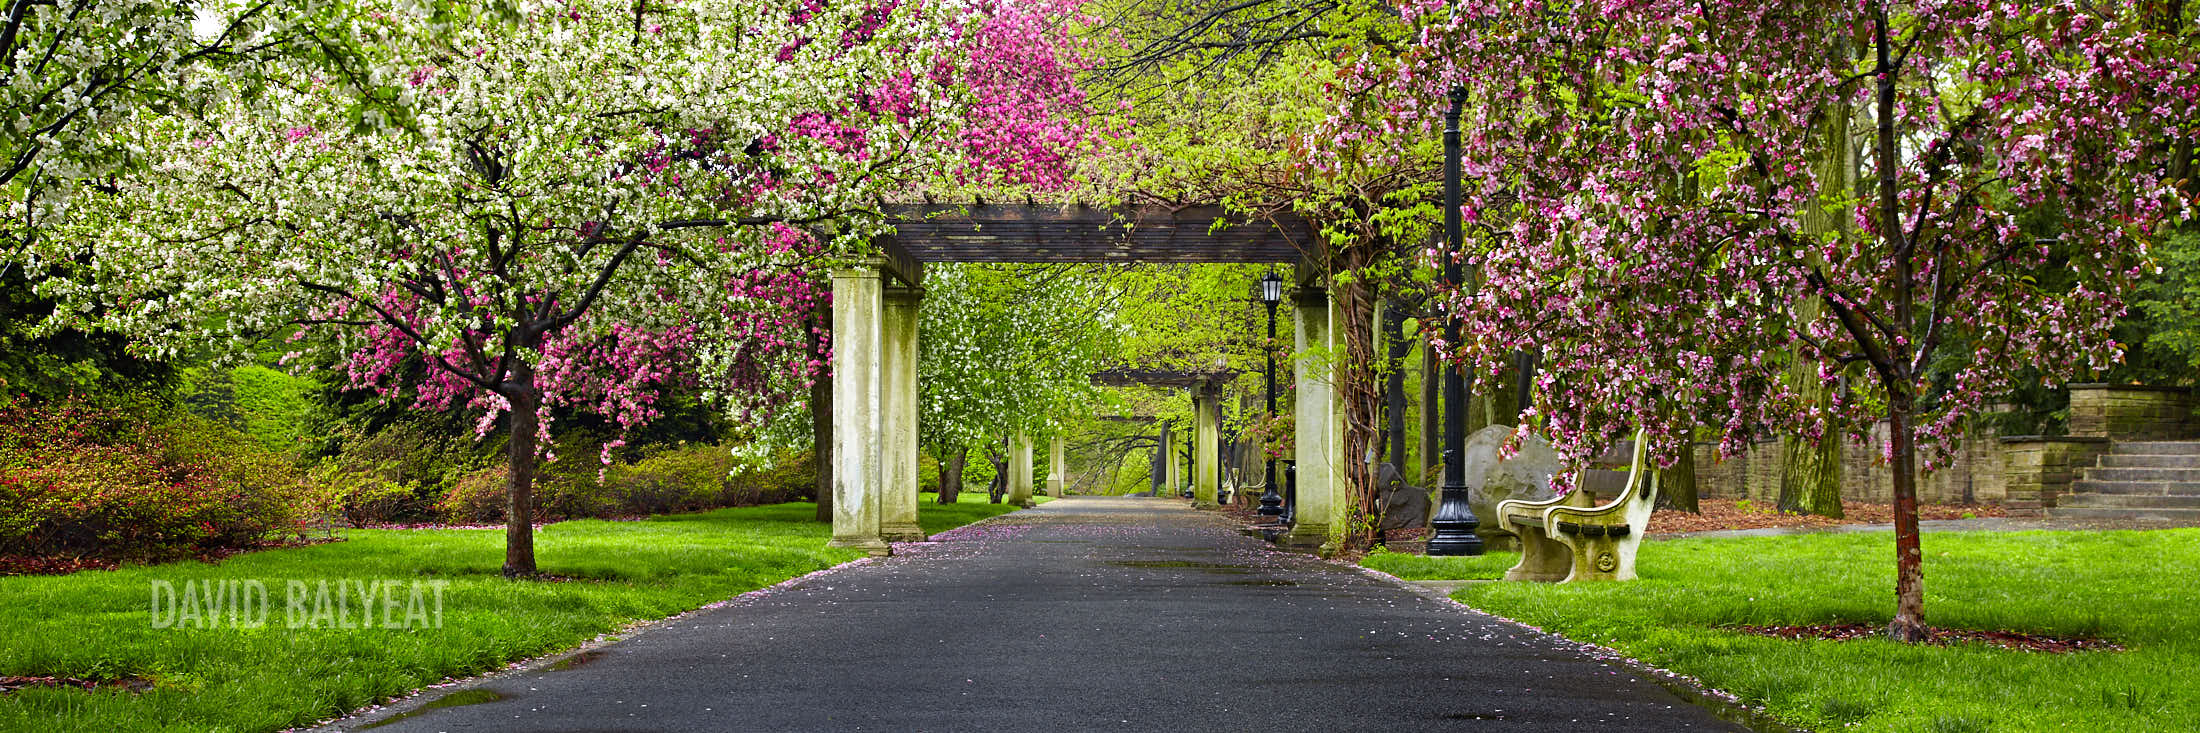 Brooklyn Botanic Secret Garden spring cherry blossoms panoramic photography